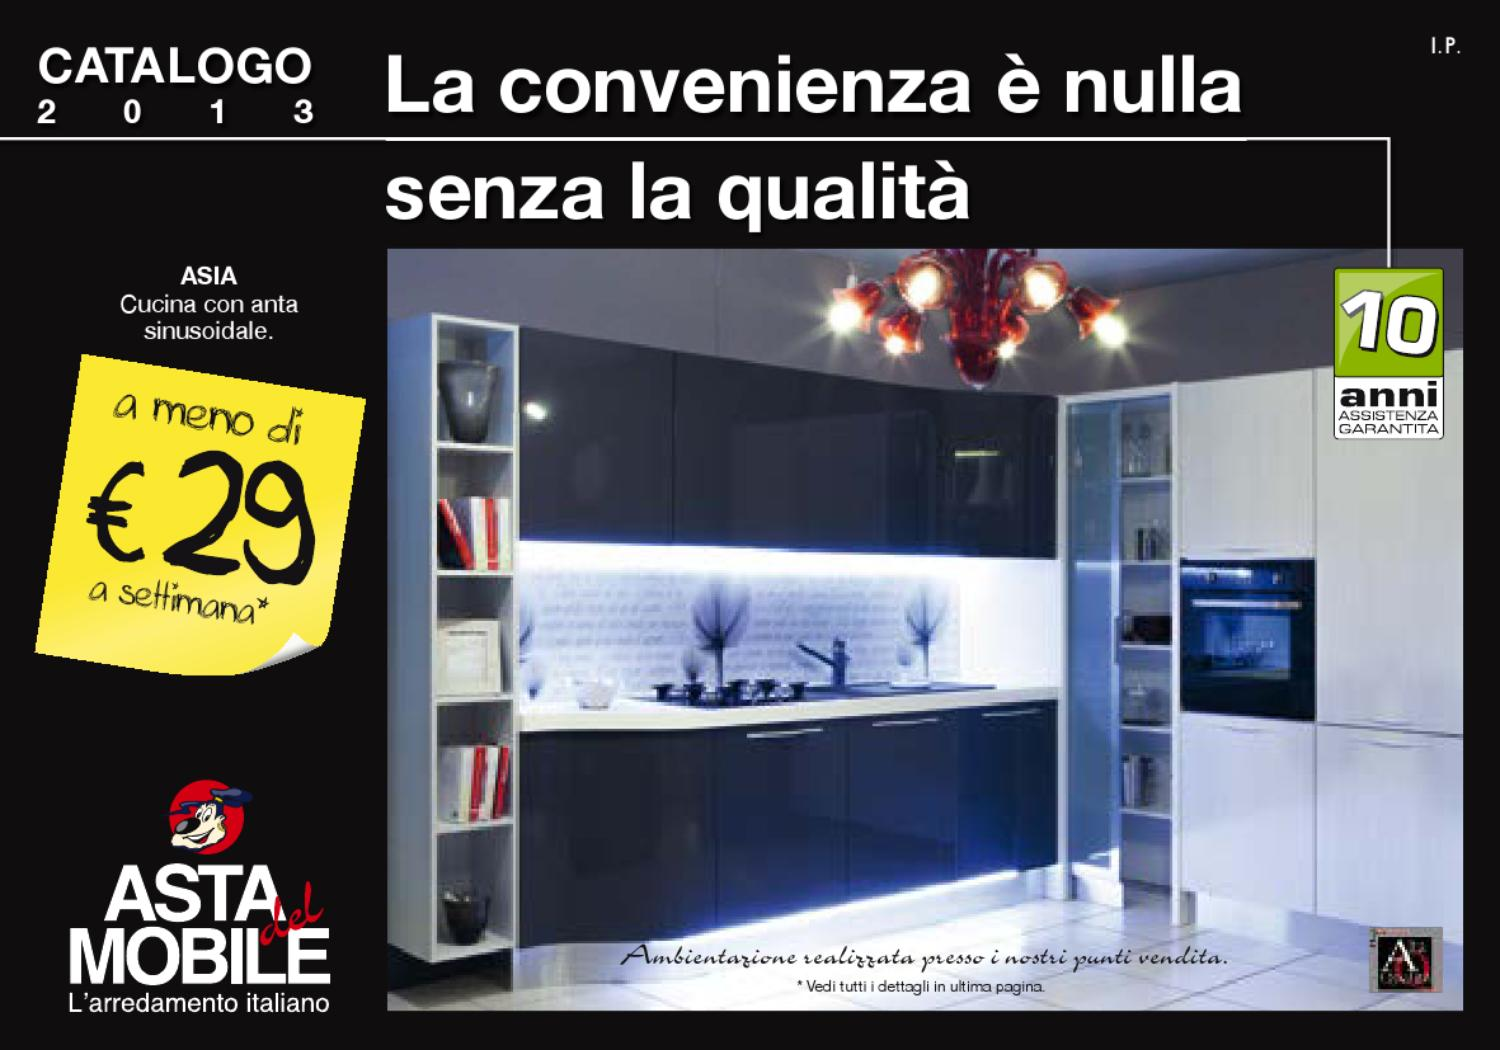 Catalogo asta del mobile 2013 l 39 arredamento italiano by for Asta mobili catalogo 2017